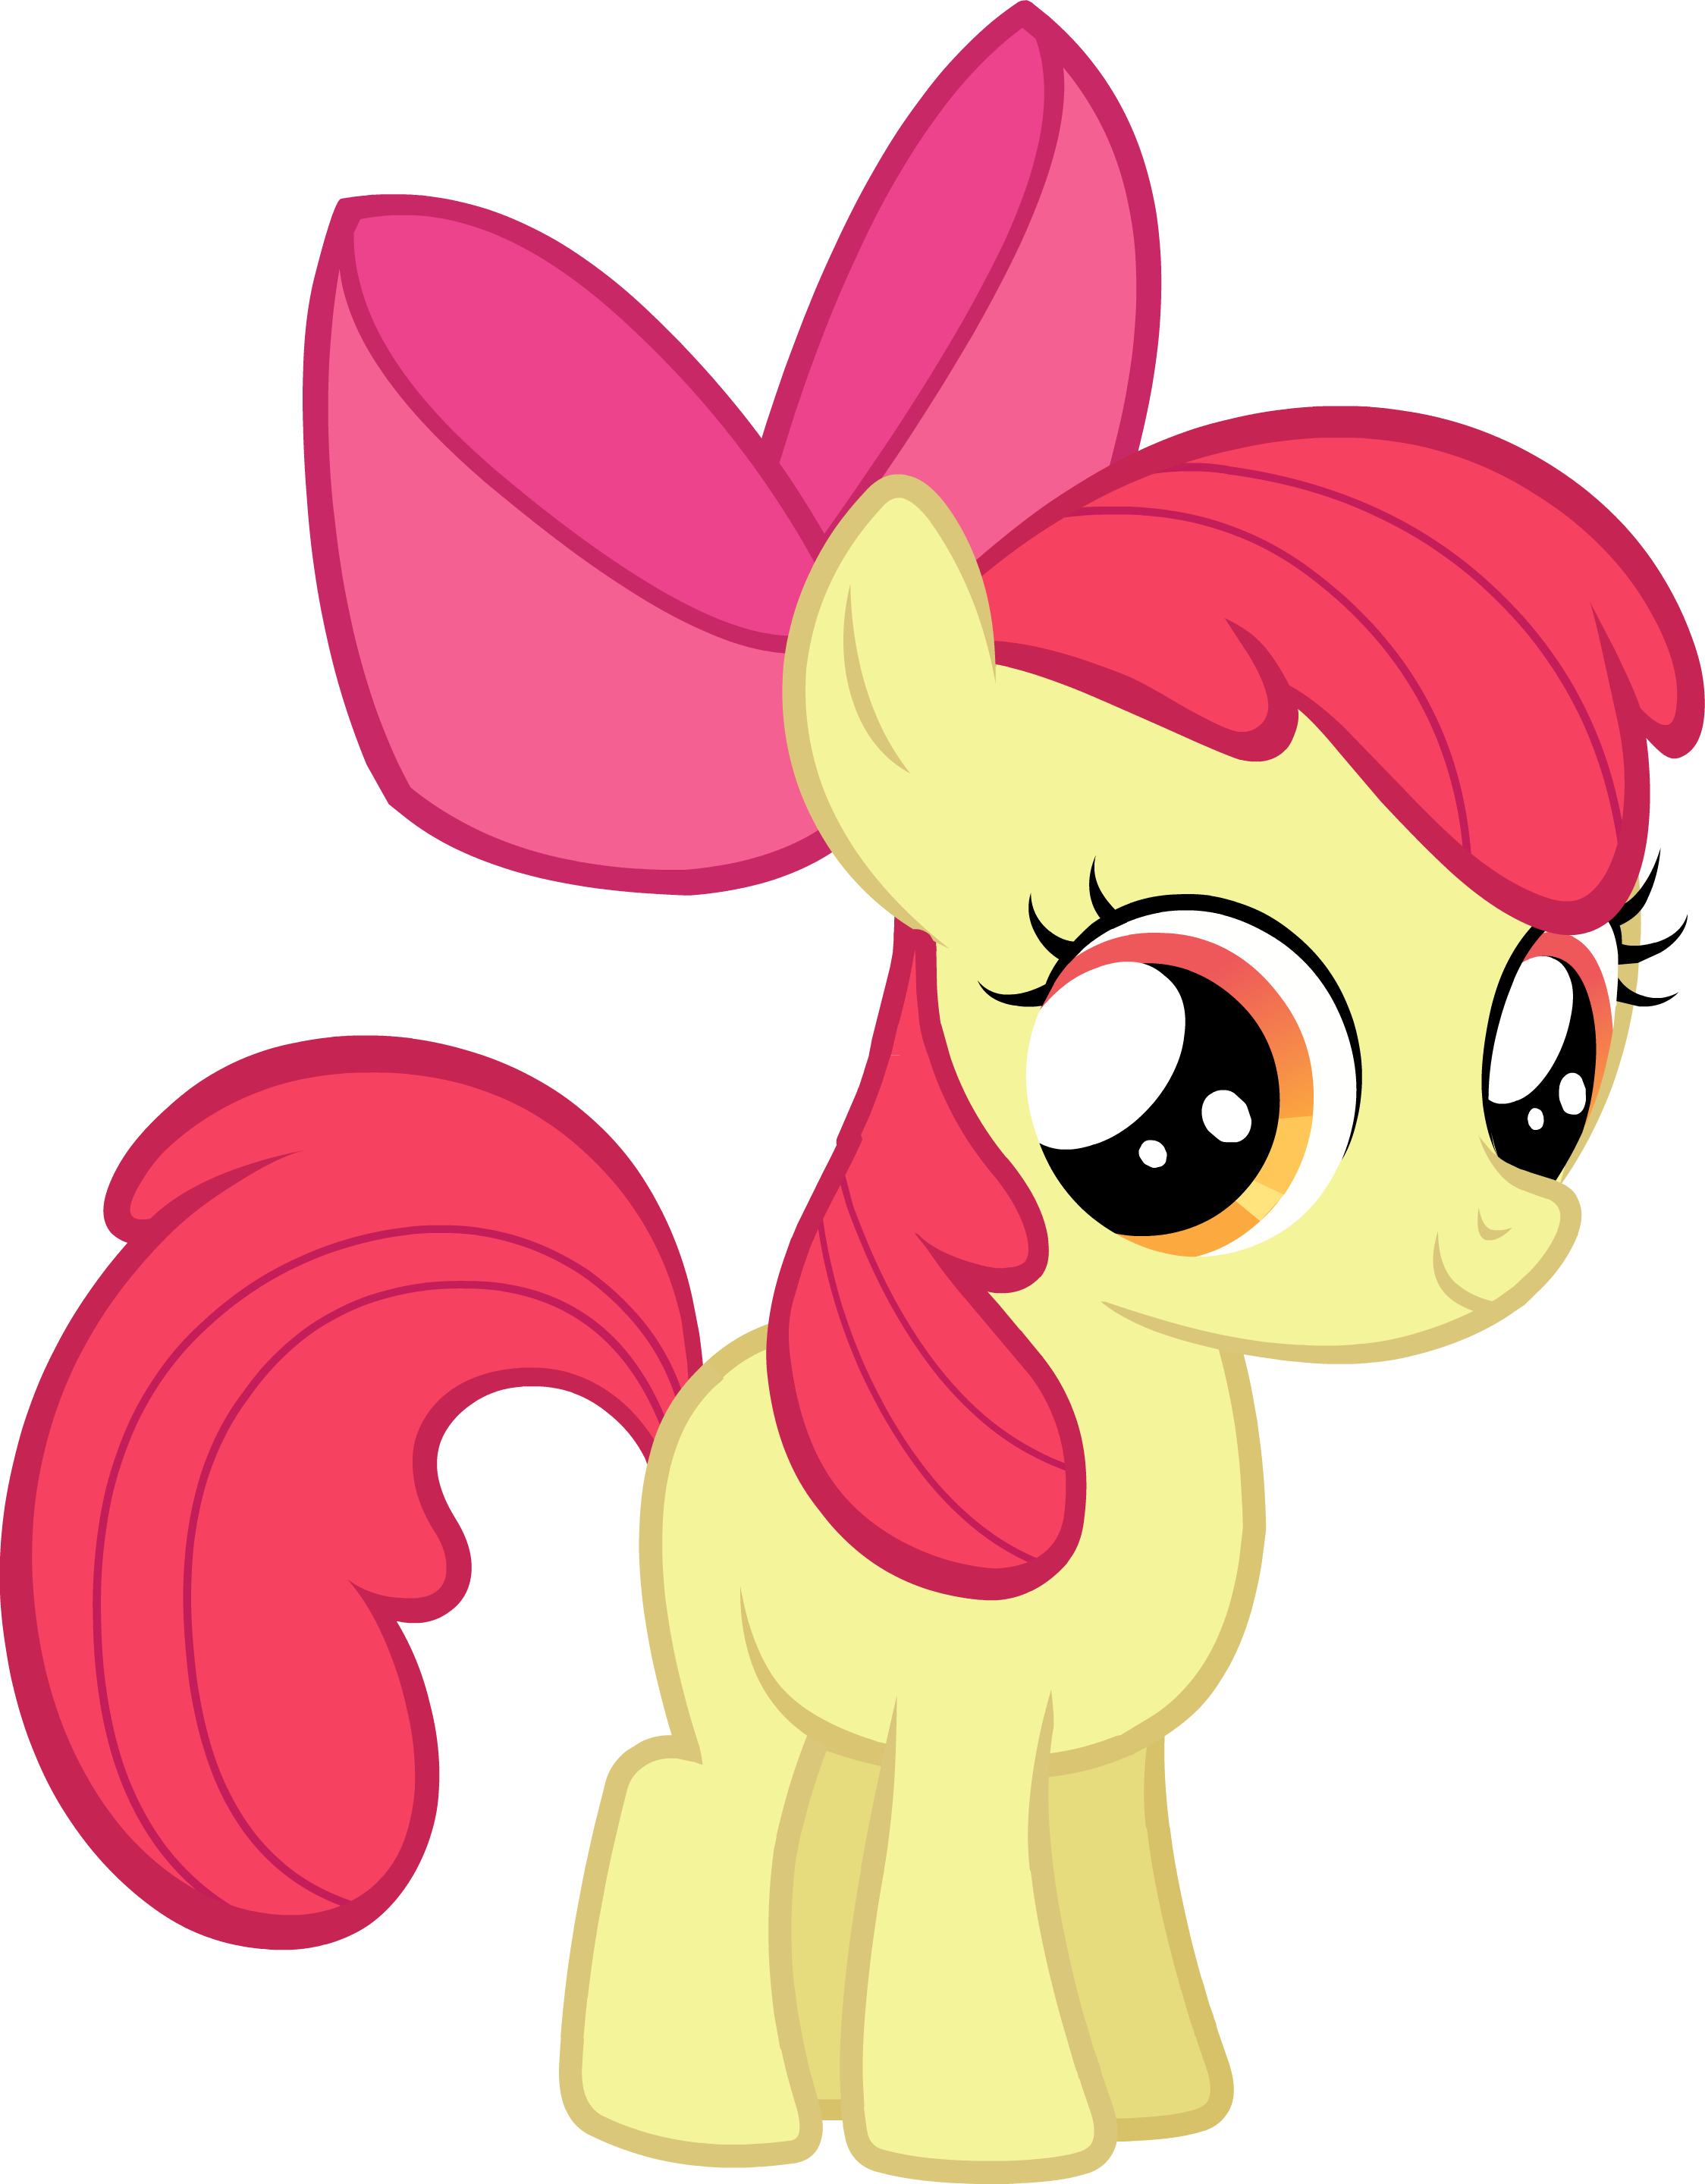 My Little Pony Friendship Is Magic Baby Apple Bloom Image - Castle Creator...